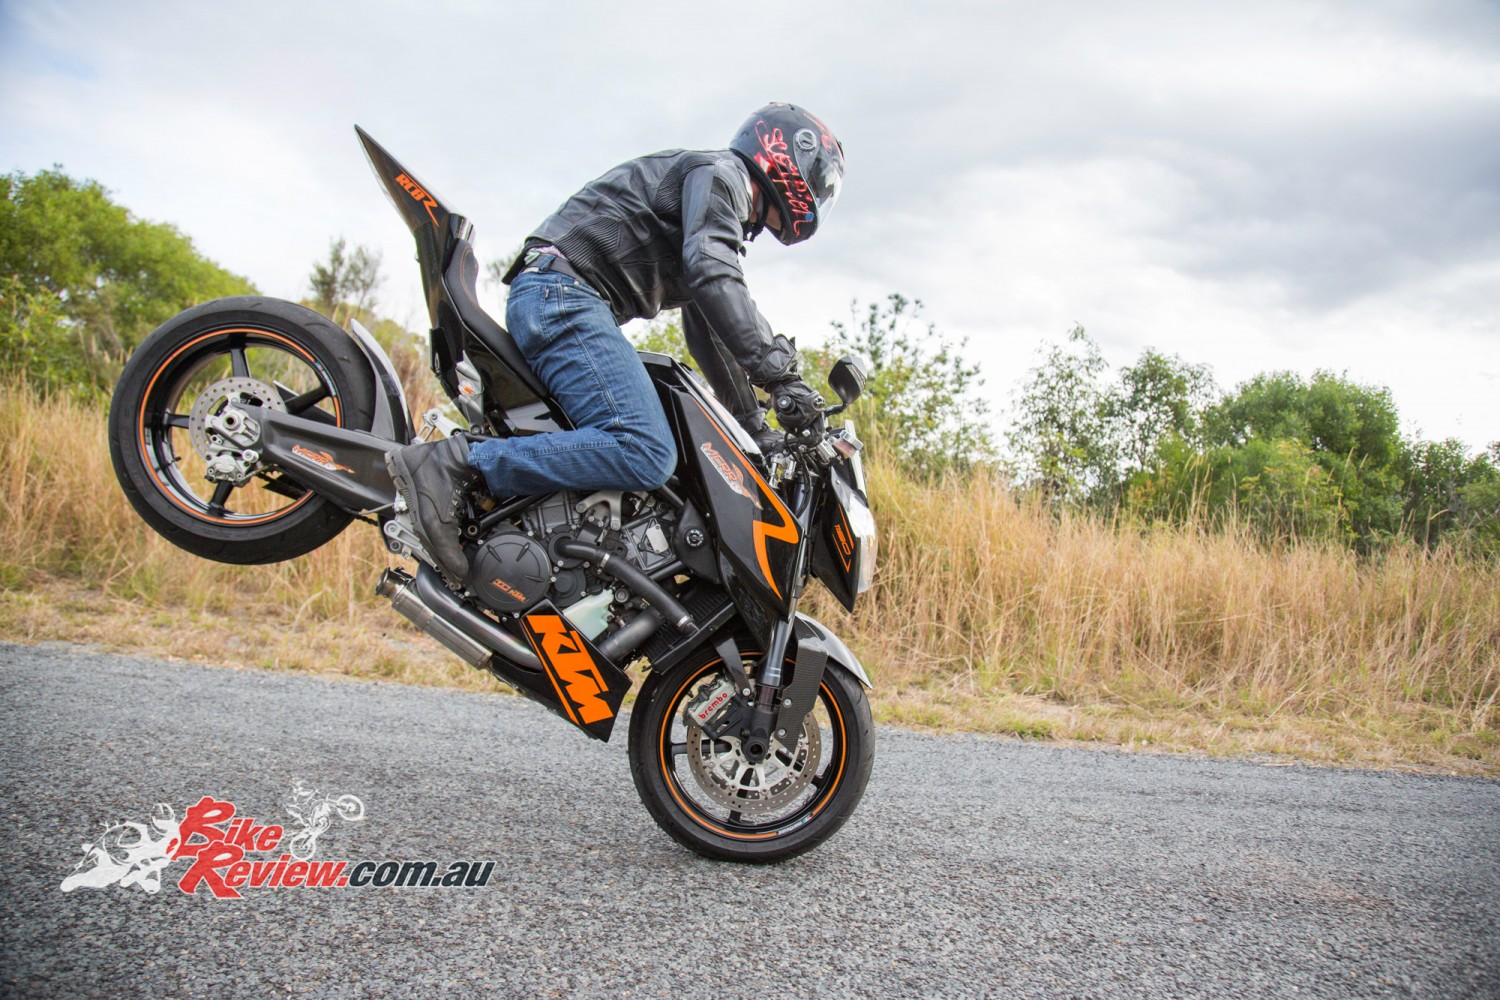 Ktm Rc8 Streetfighter Bike Review